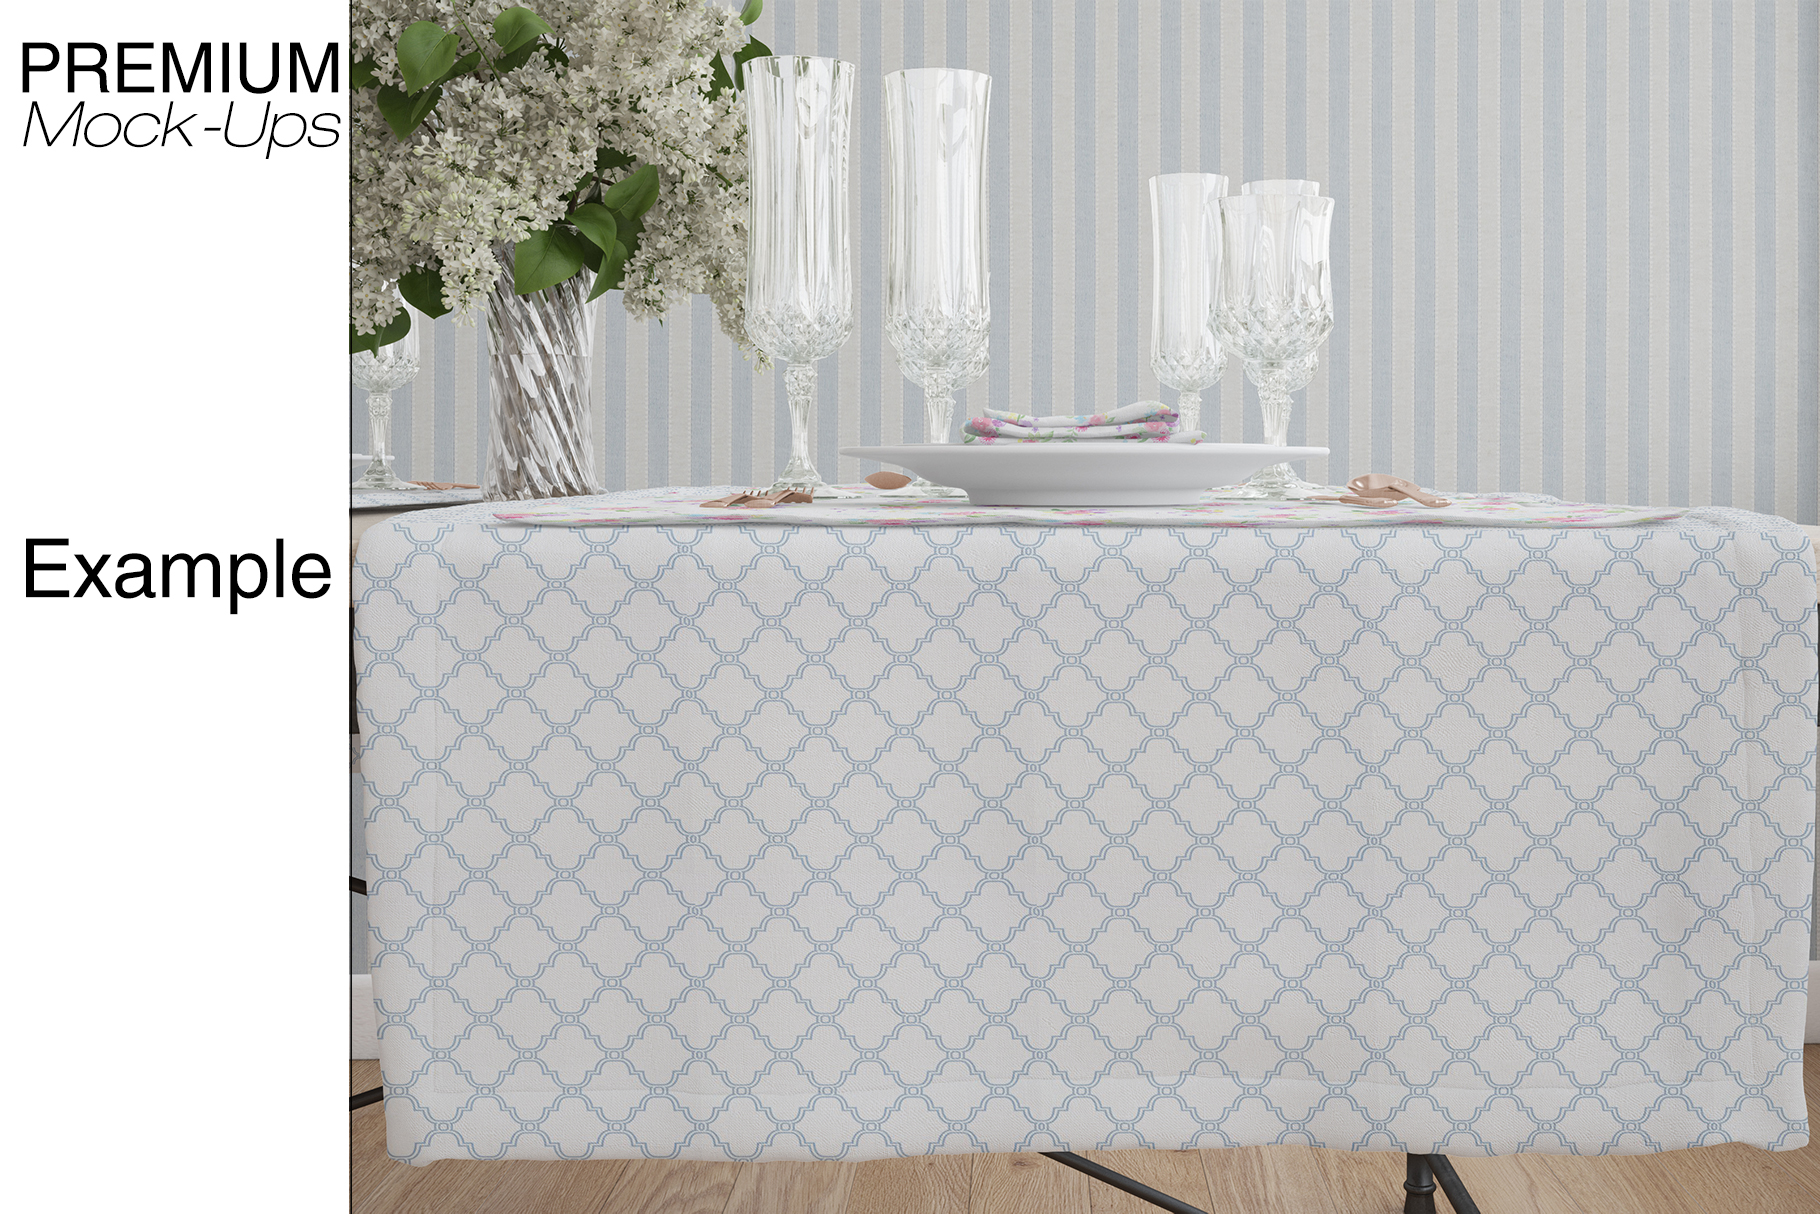 Tablecloth, Runner, Napkins & Plates example image 17